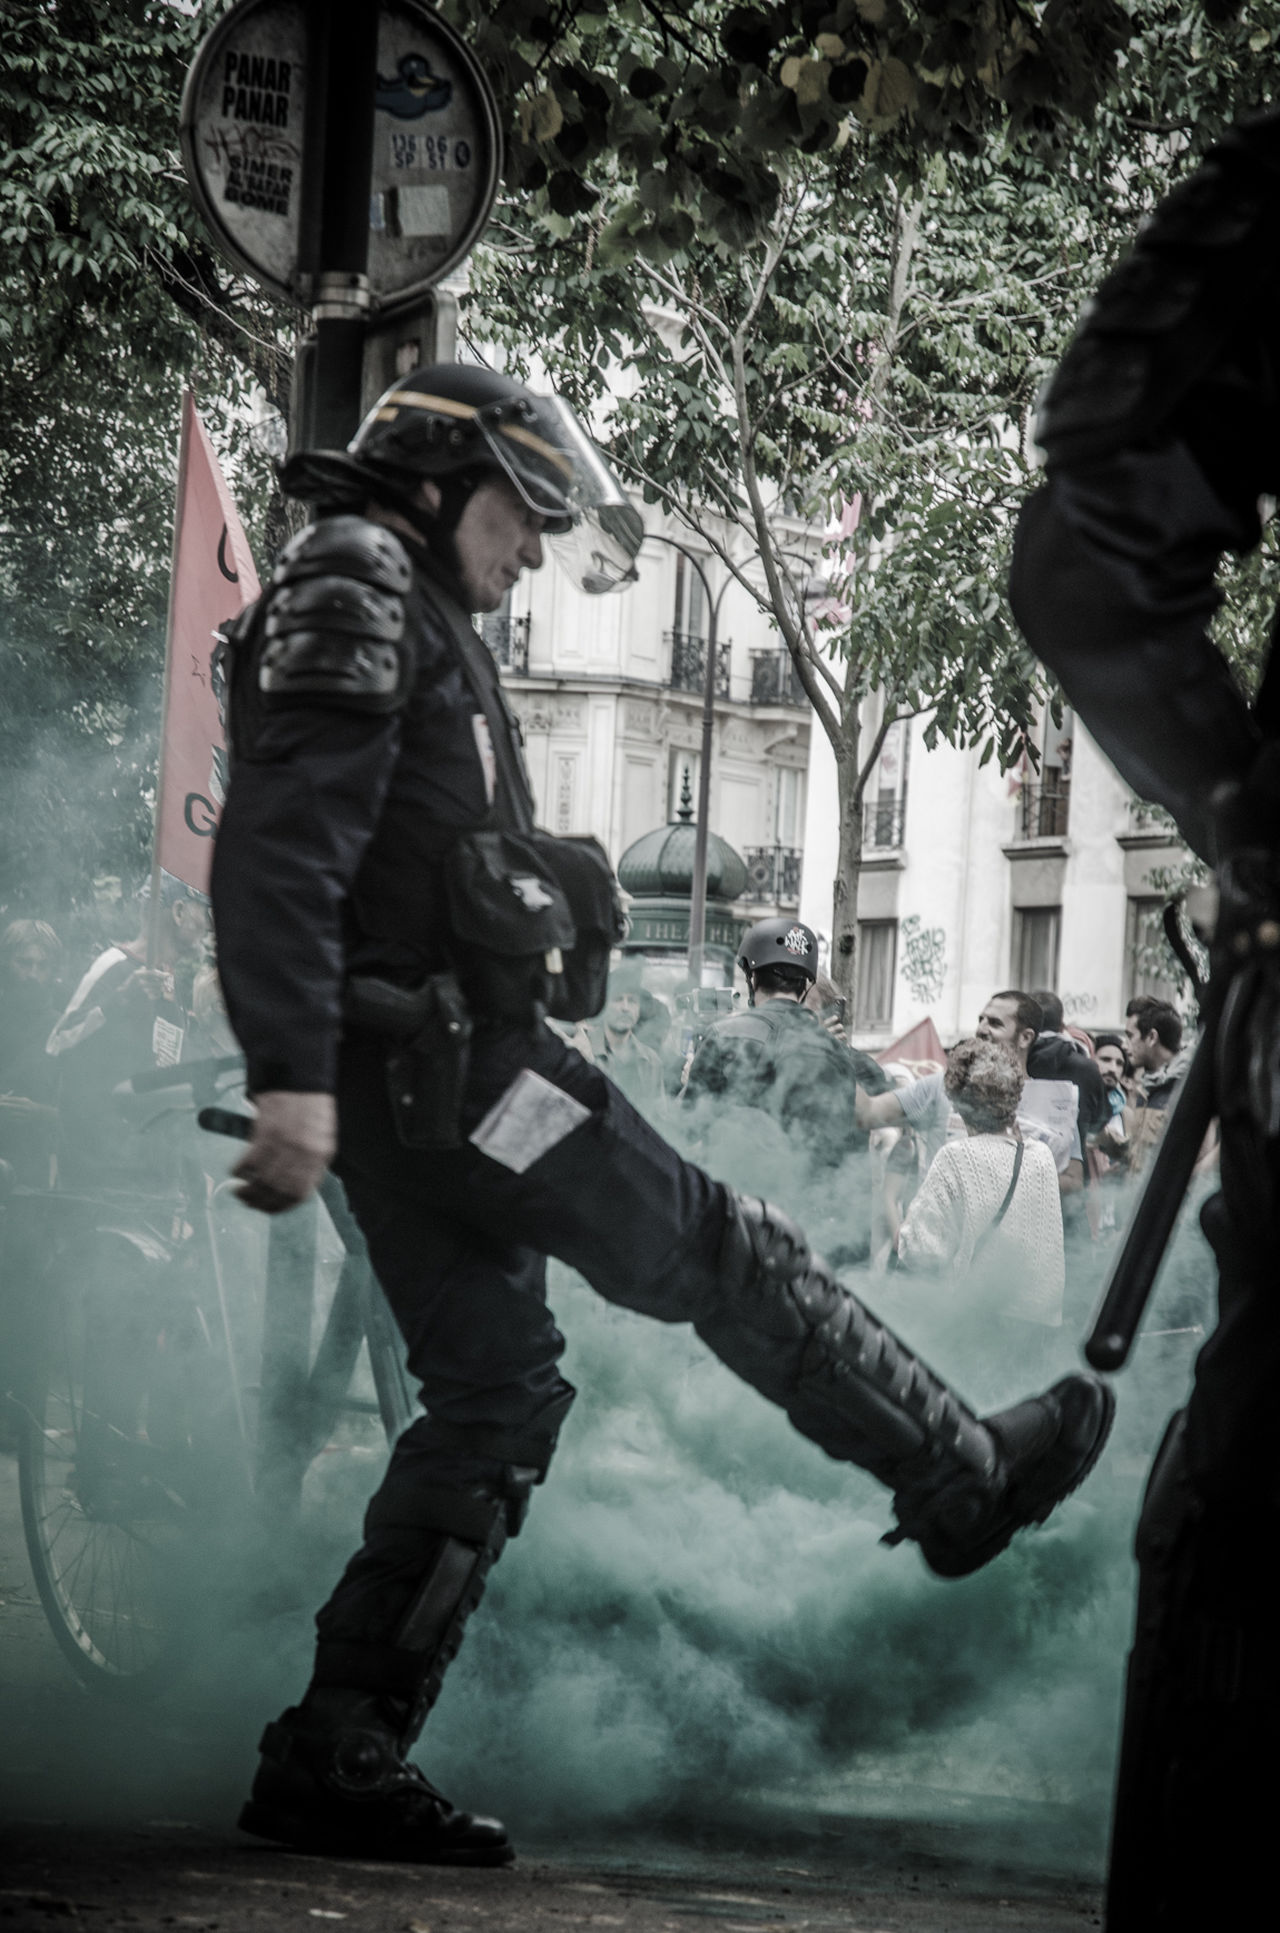 La manifestation contre la loi travail du 15 septembre 2016. Protest against Labor law in Paris, the 15th september 2016 15septembre Action Cops Labor Law Loitravail Manifestation Paris, France  Police Protest Riot Social Street Vandalism Violence Workers Loi Travail